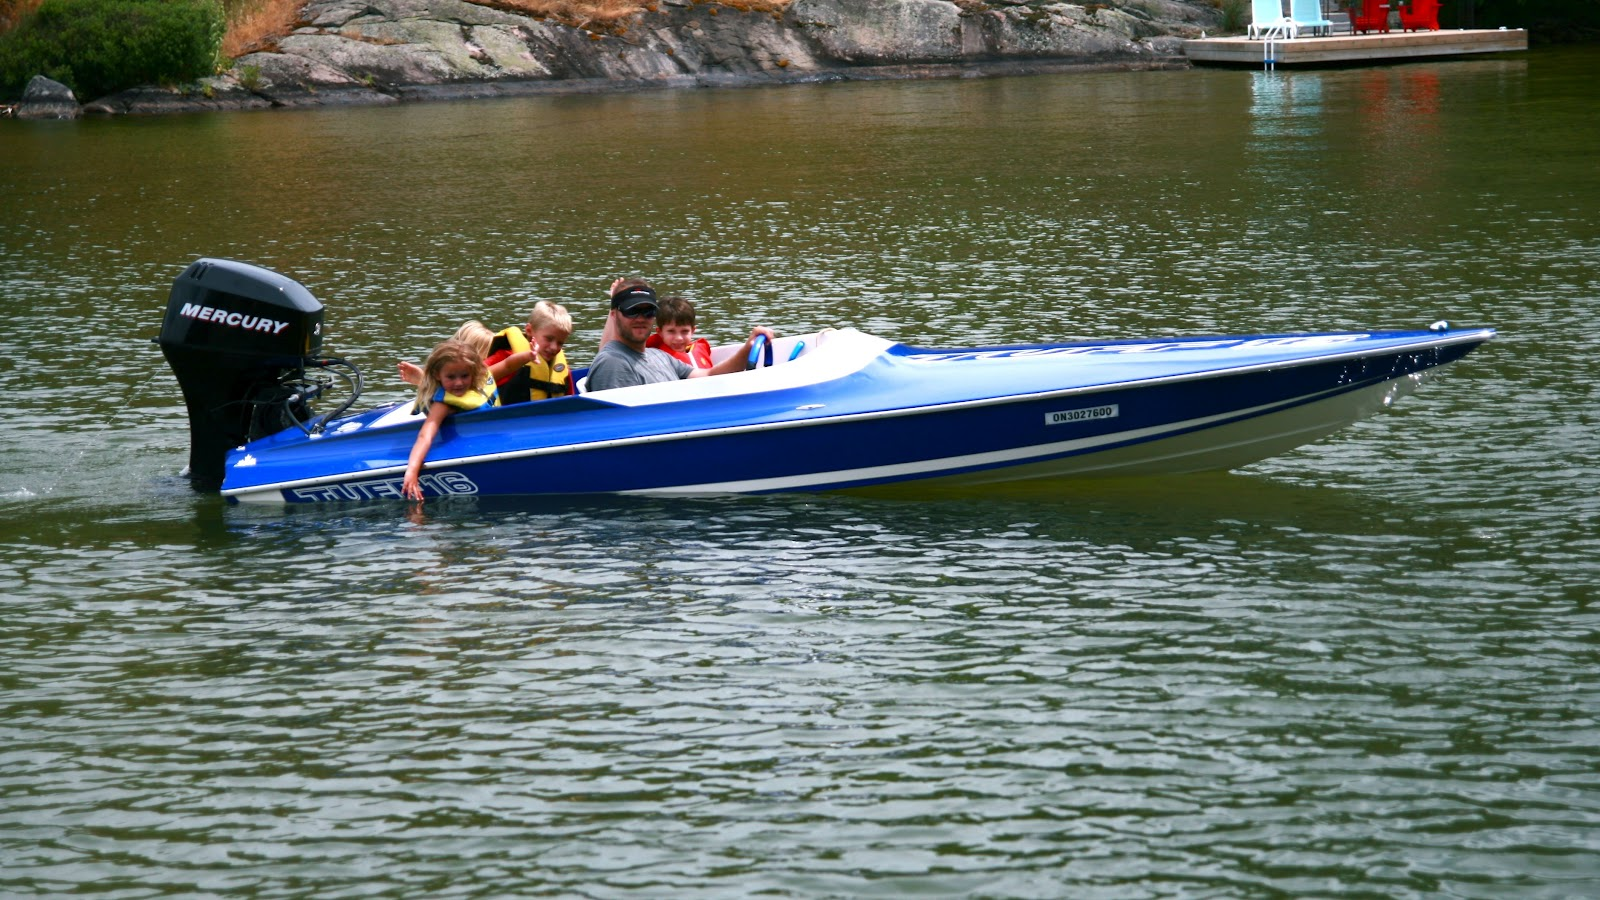 How to Build Speed Boat ~ My Boat Plans